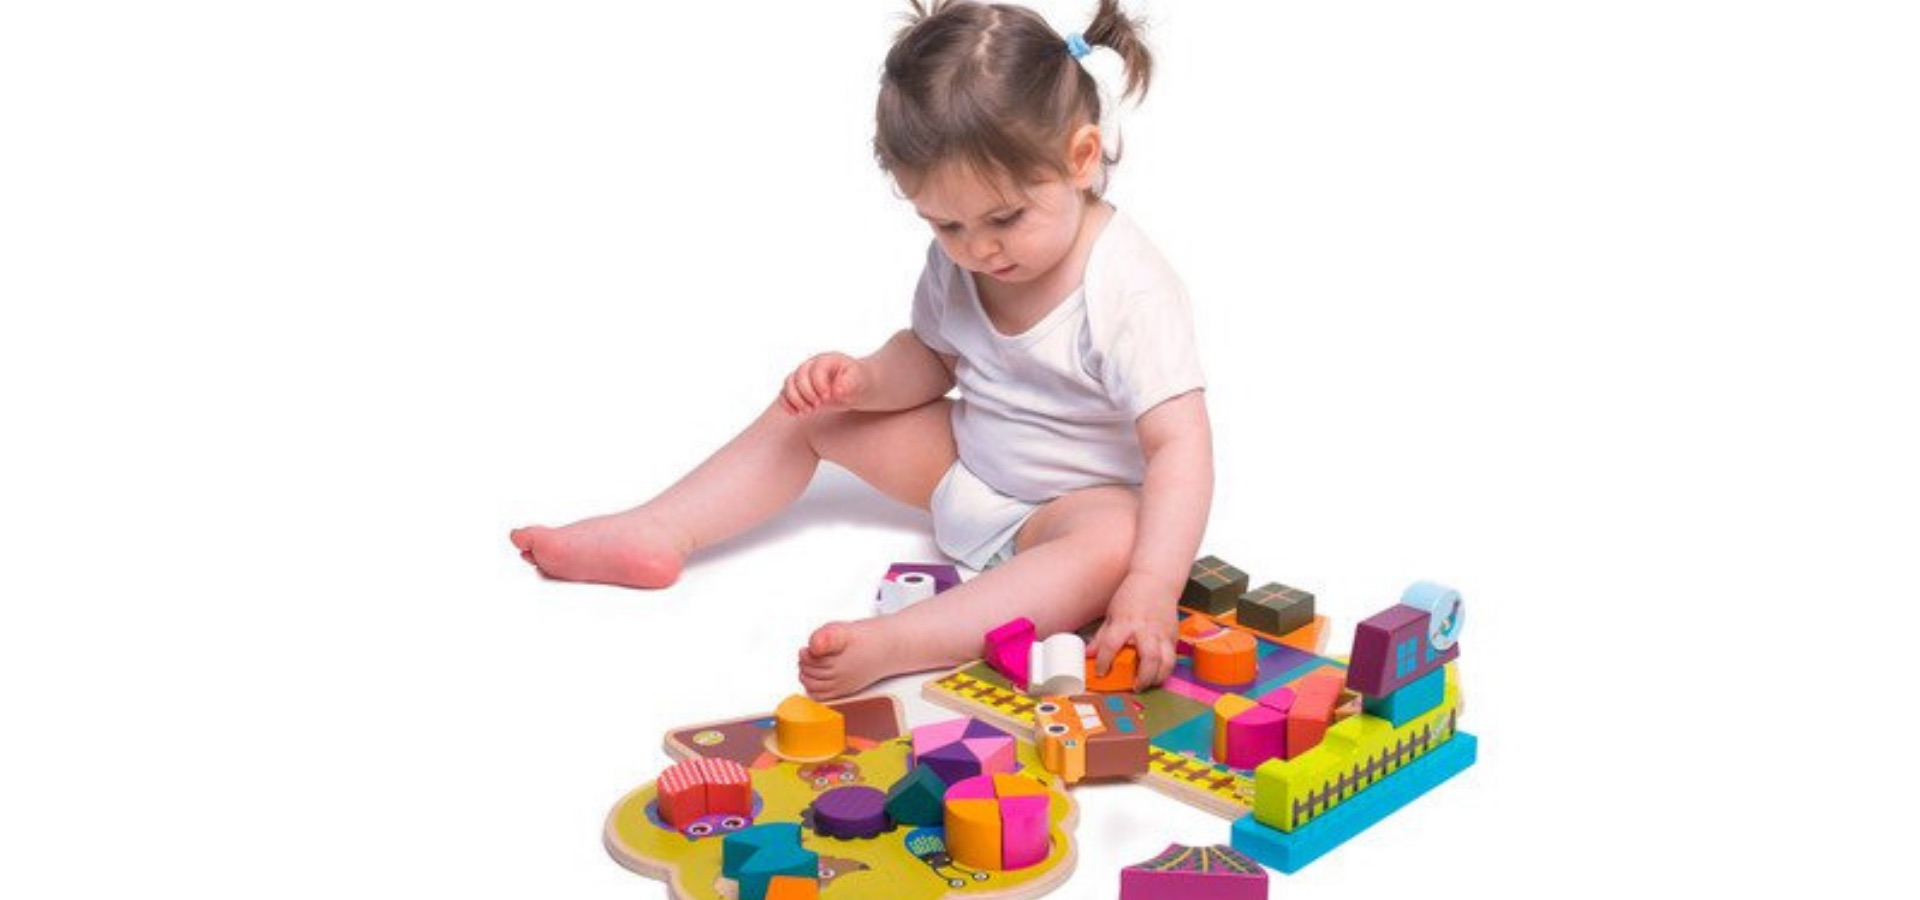 Puzzles Are Important For Early Childhood Development